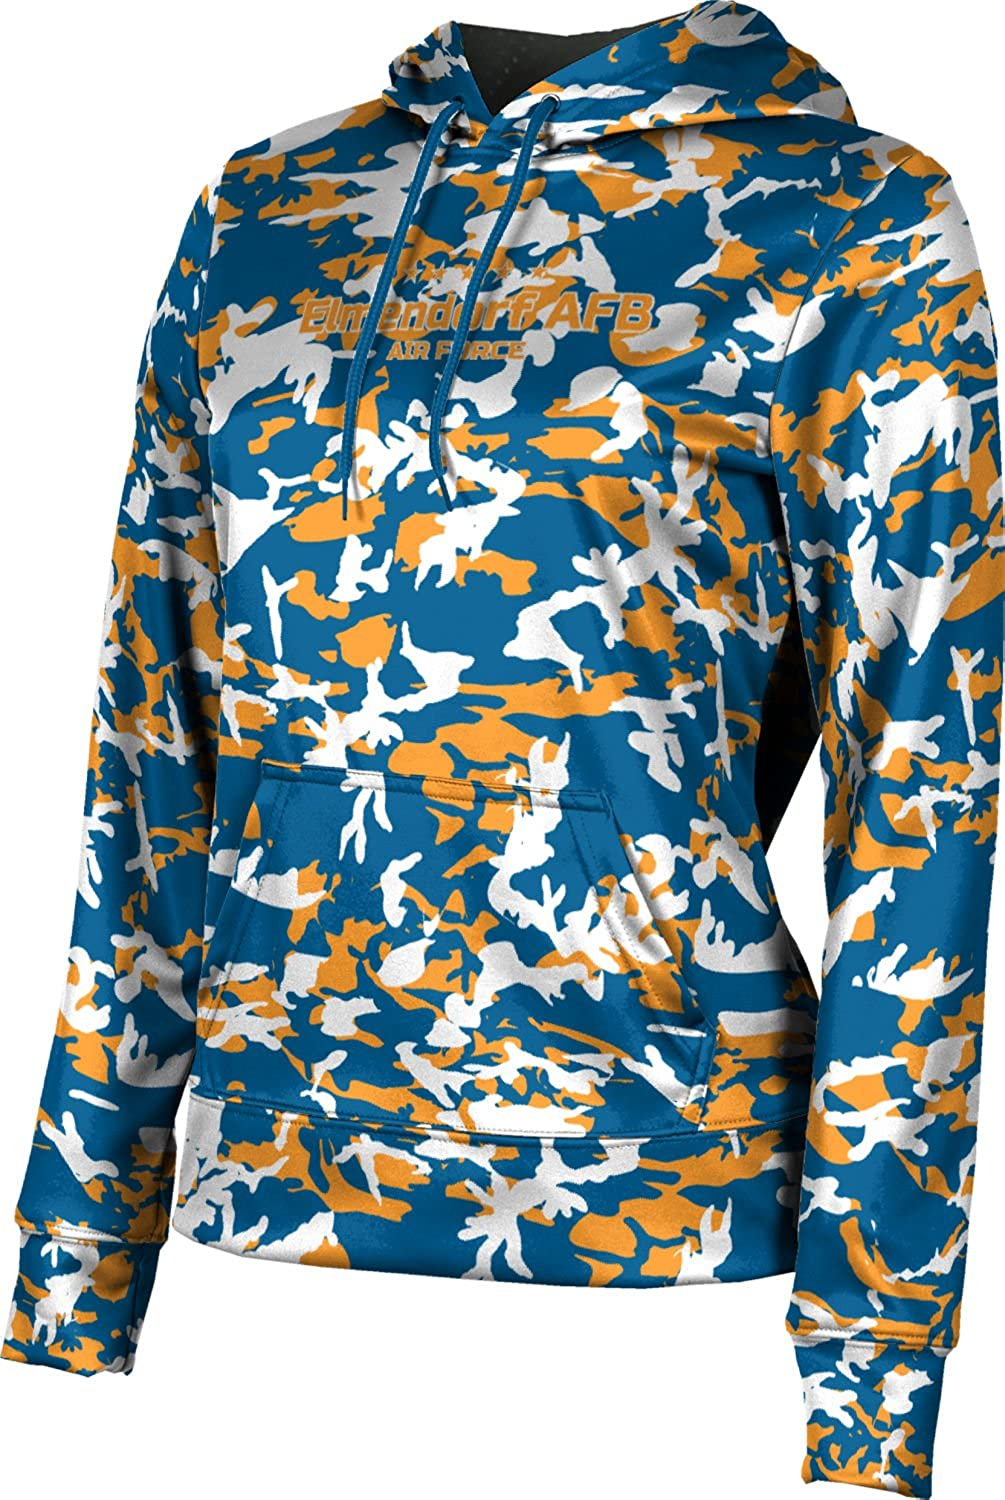 ProSphere Women's Elmendorf AFB Military Camo Pullover Hoodie